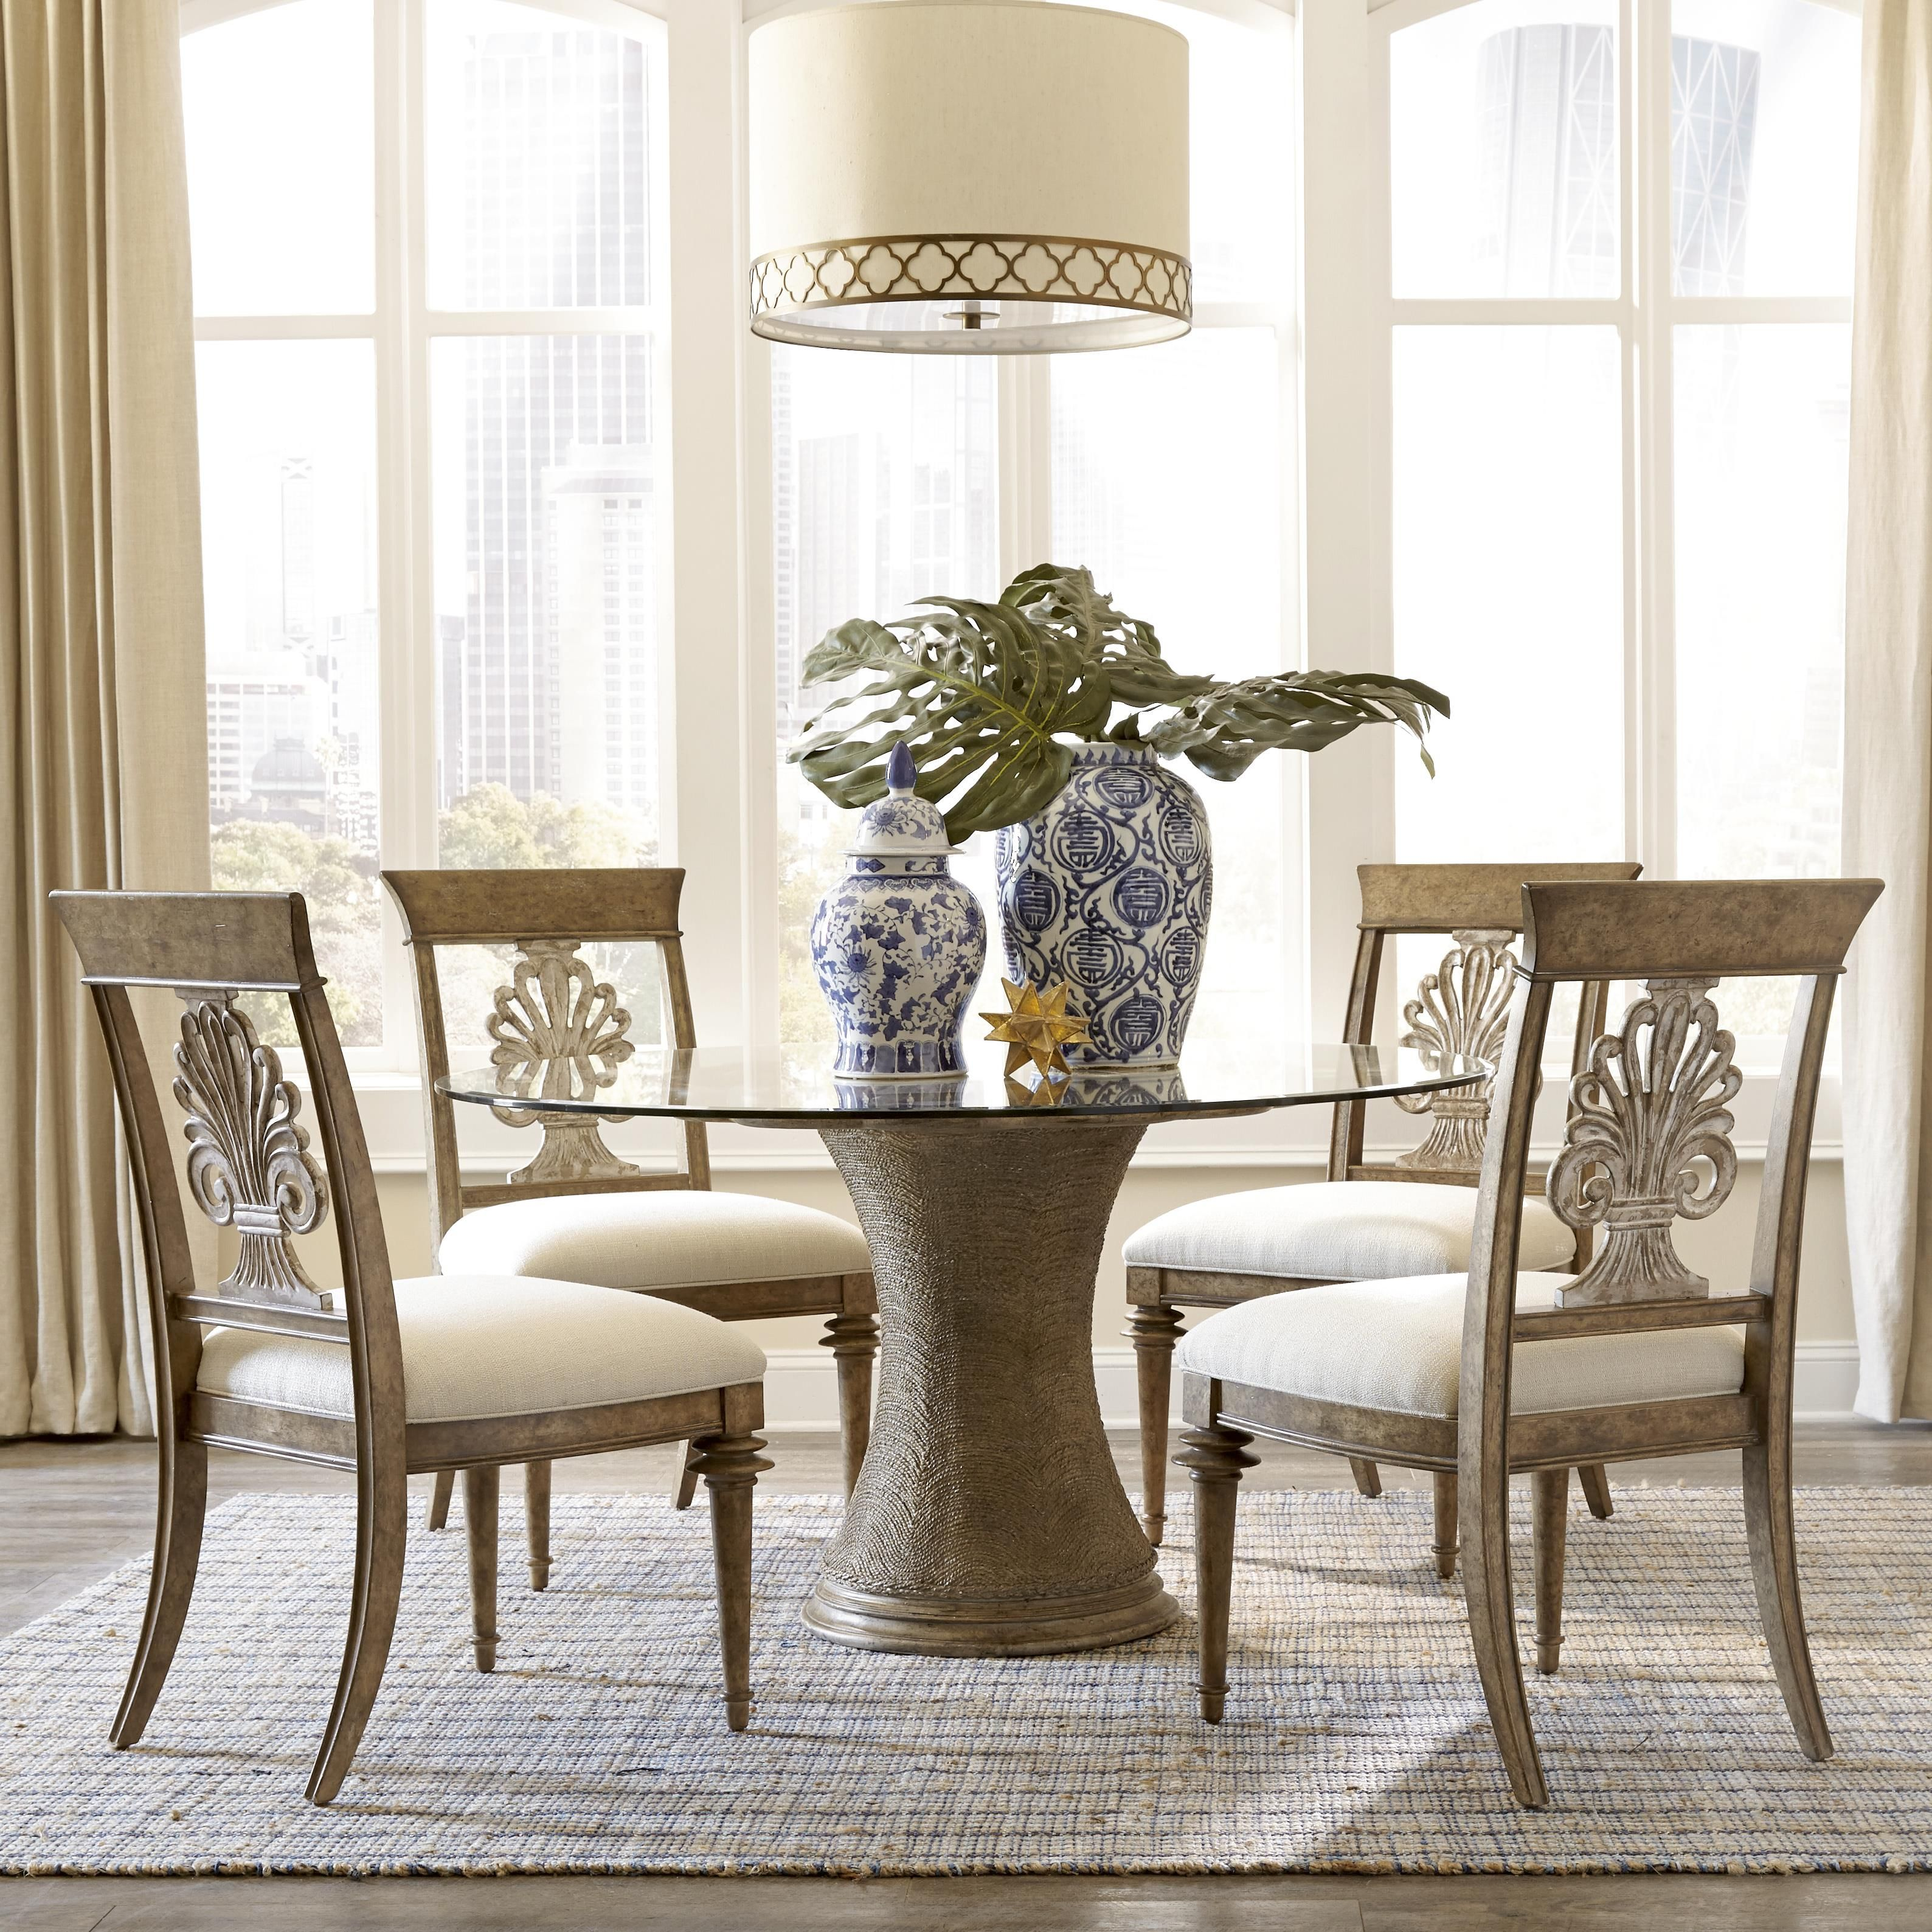 Tropical Dining Room Furniture: Tropical Style Radiates From This Pedestal Dining Table